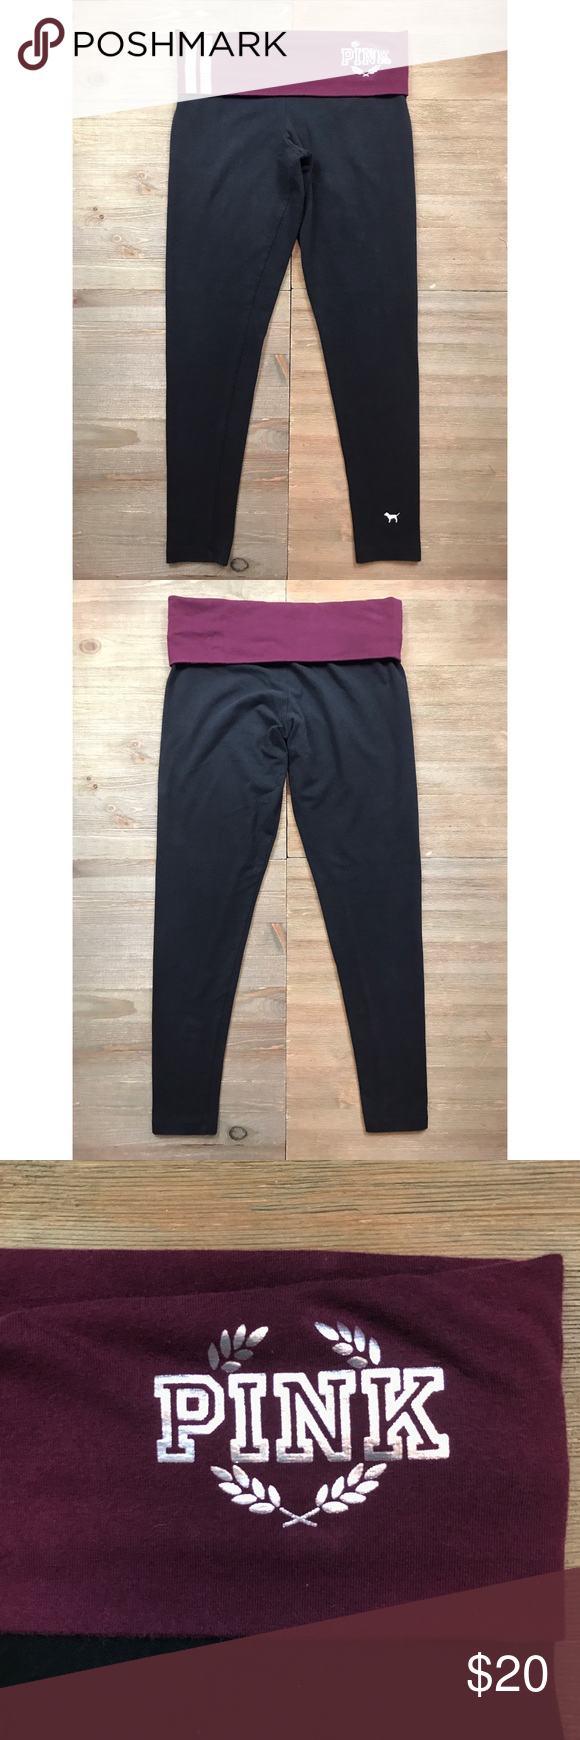 a55f2614d7fec8 VS PINK Bling Yoga Leggings PINK by Victoria's Secret. Yoga leggings. Black  with maroon fold over waistband. Silver foil logo with rhinestone stripes.